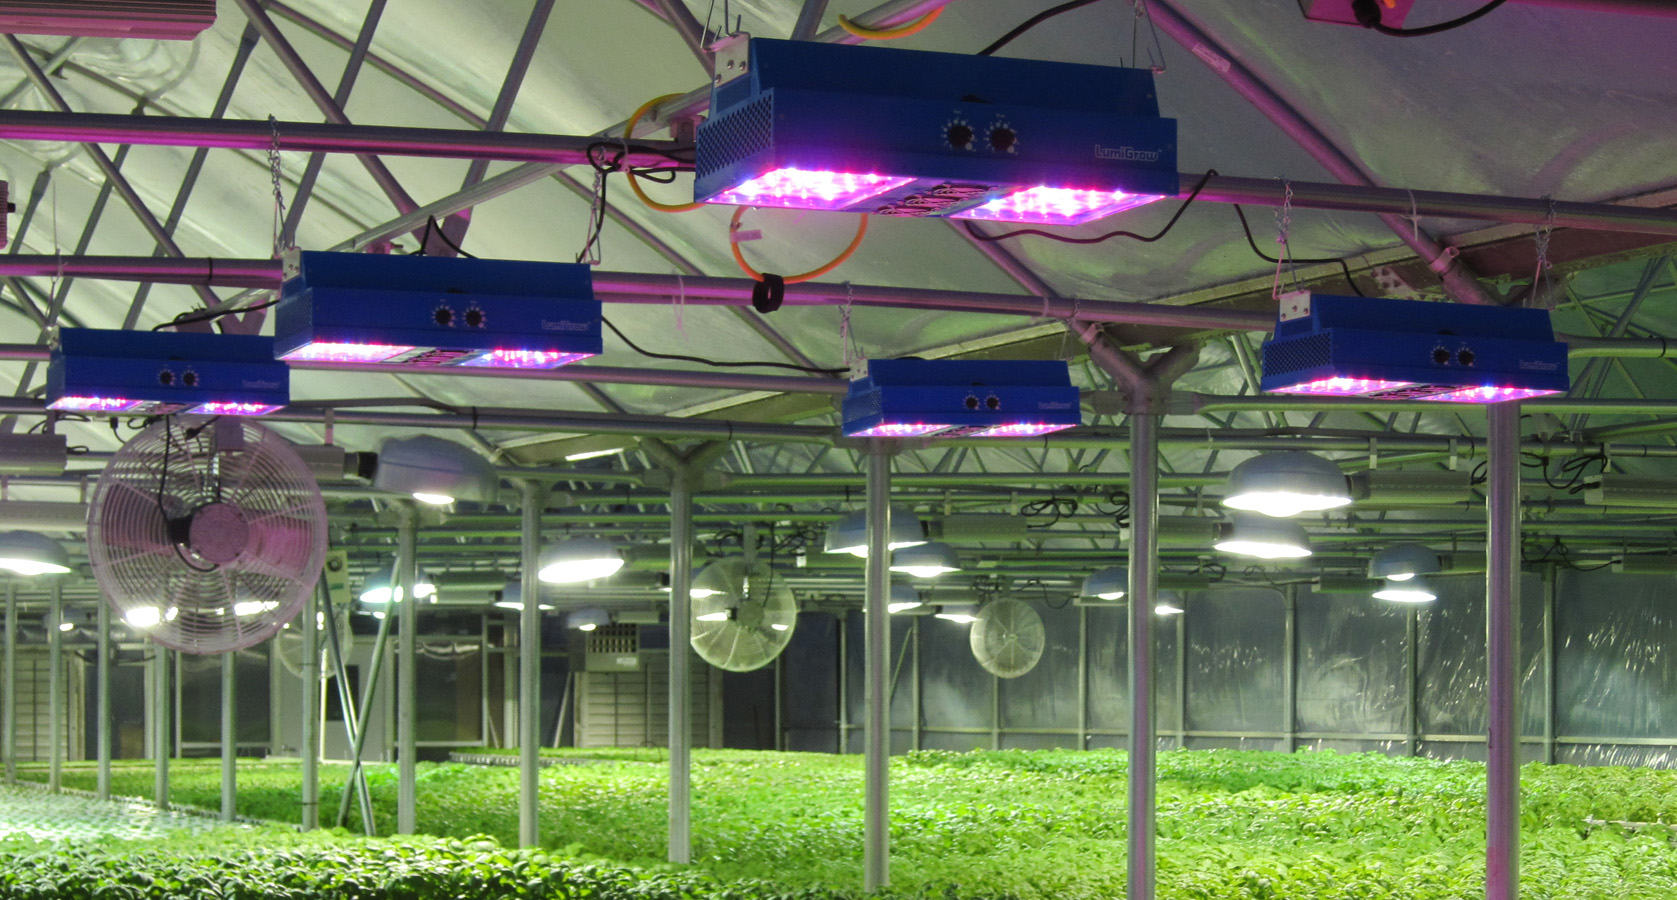 Lighting Online Msu To Offer Online Greenhouse Lighting Course Greenhouse